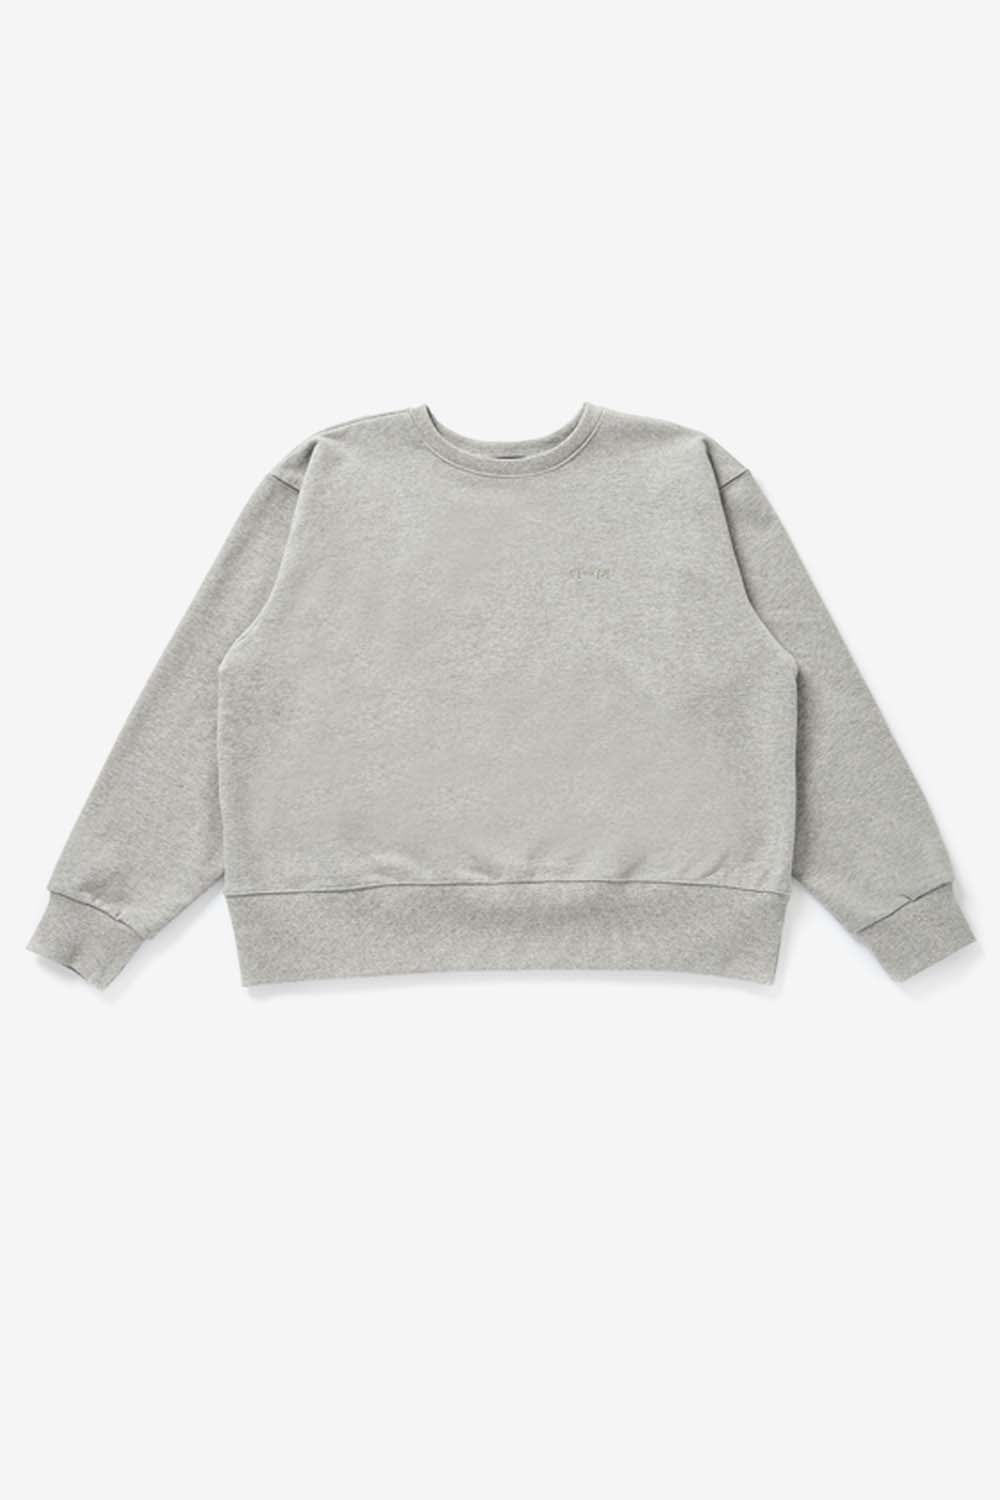 Slow B heavy MTM_Grey (UNISEX)BS9FMT203GR